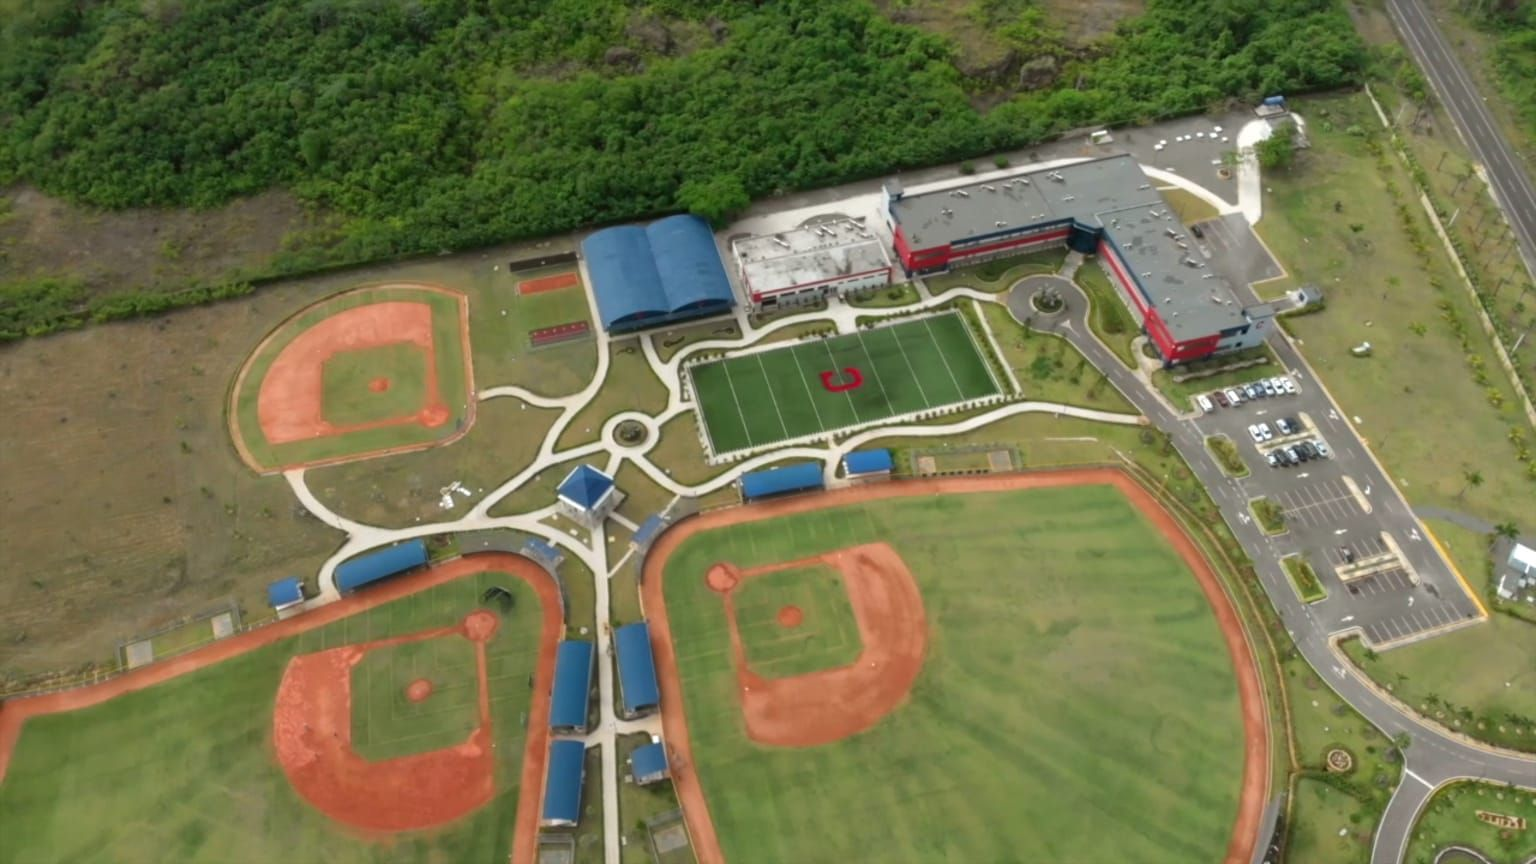 Video Indians Ceo Paul Dolan Talks About The Club Opening A Baseball Academy In The Dominican Republic Academy Open Academy Baseball Field